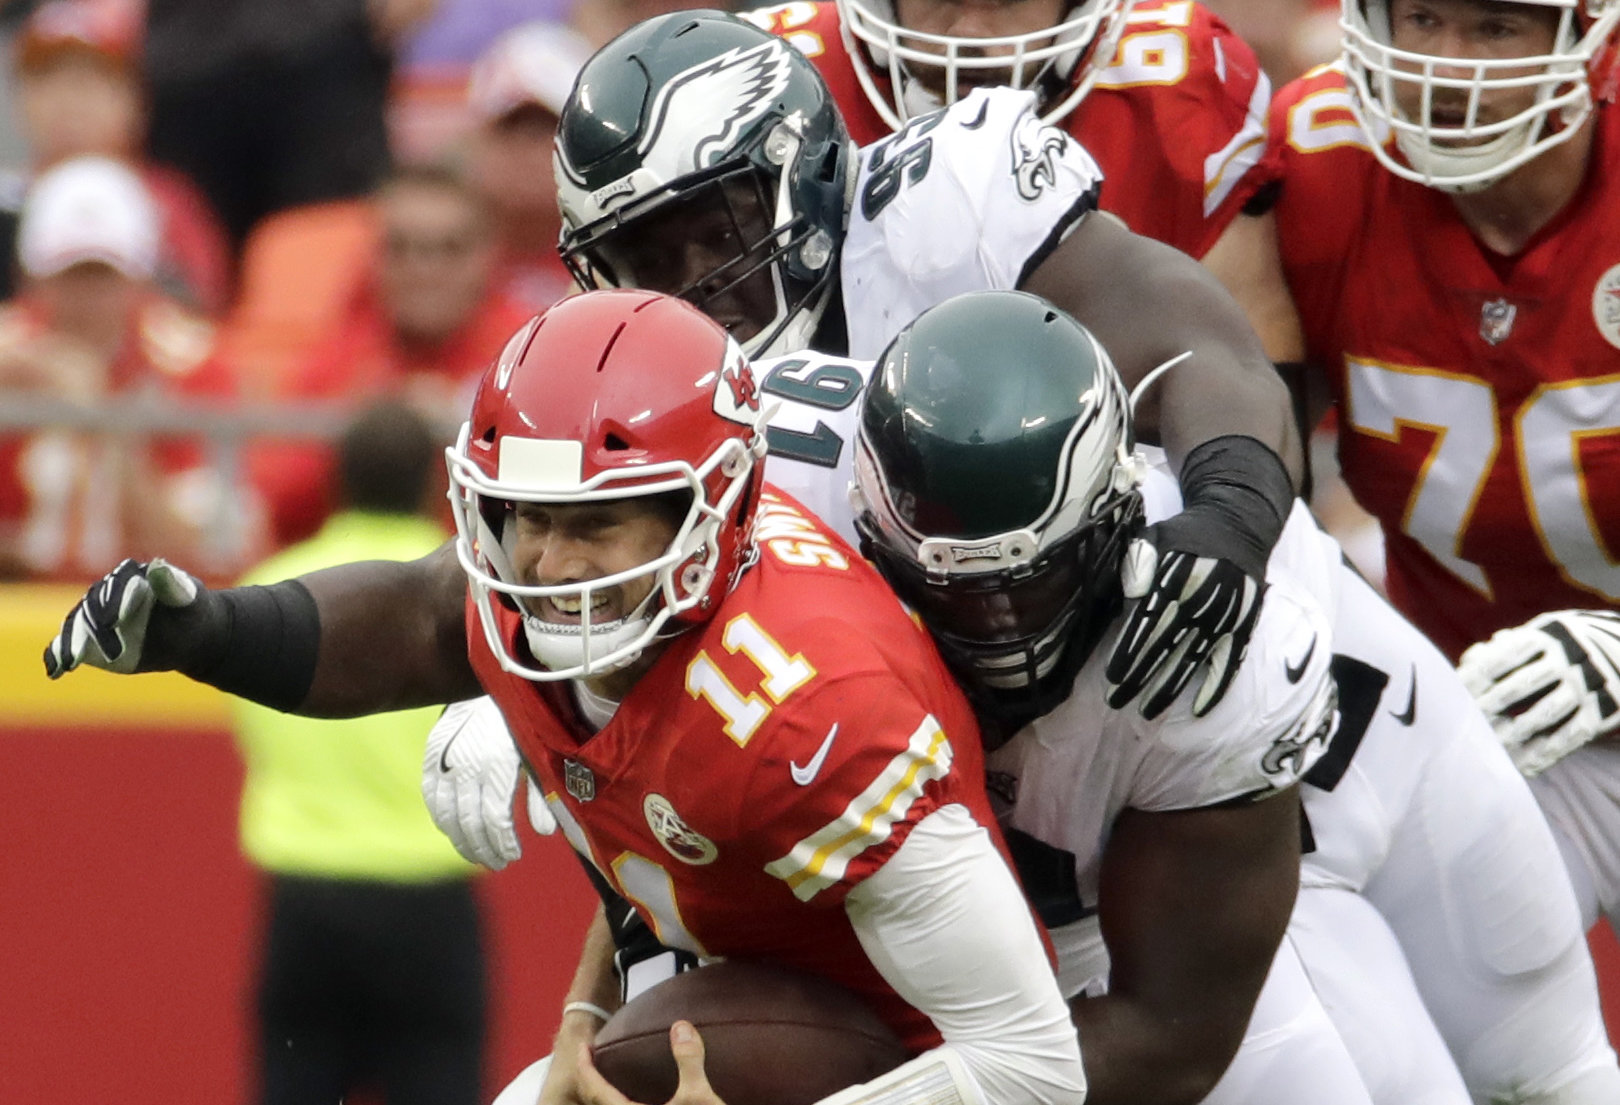 Will Fletcher Cox Jordan Hicks play against Chargers Eagles fans